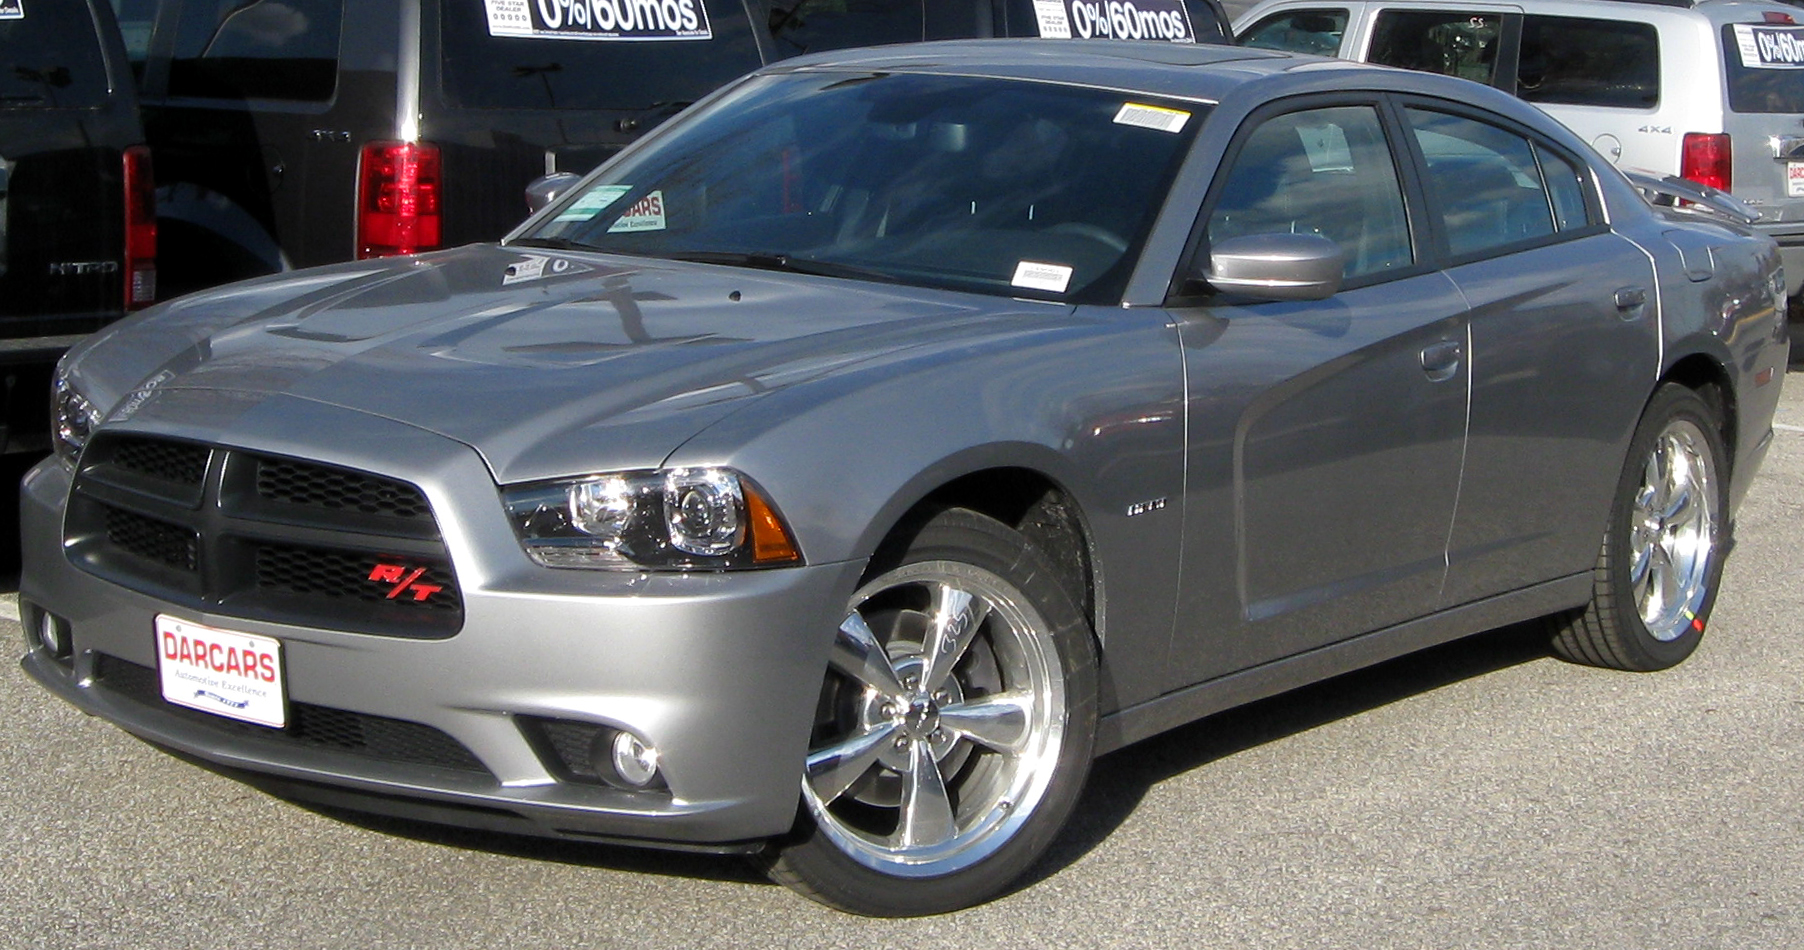 Dodge 08 dodge charger srt8 specs : Dodge Charger (LX)